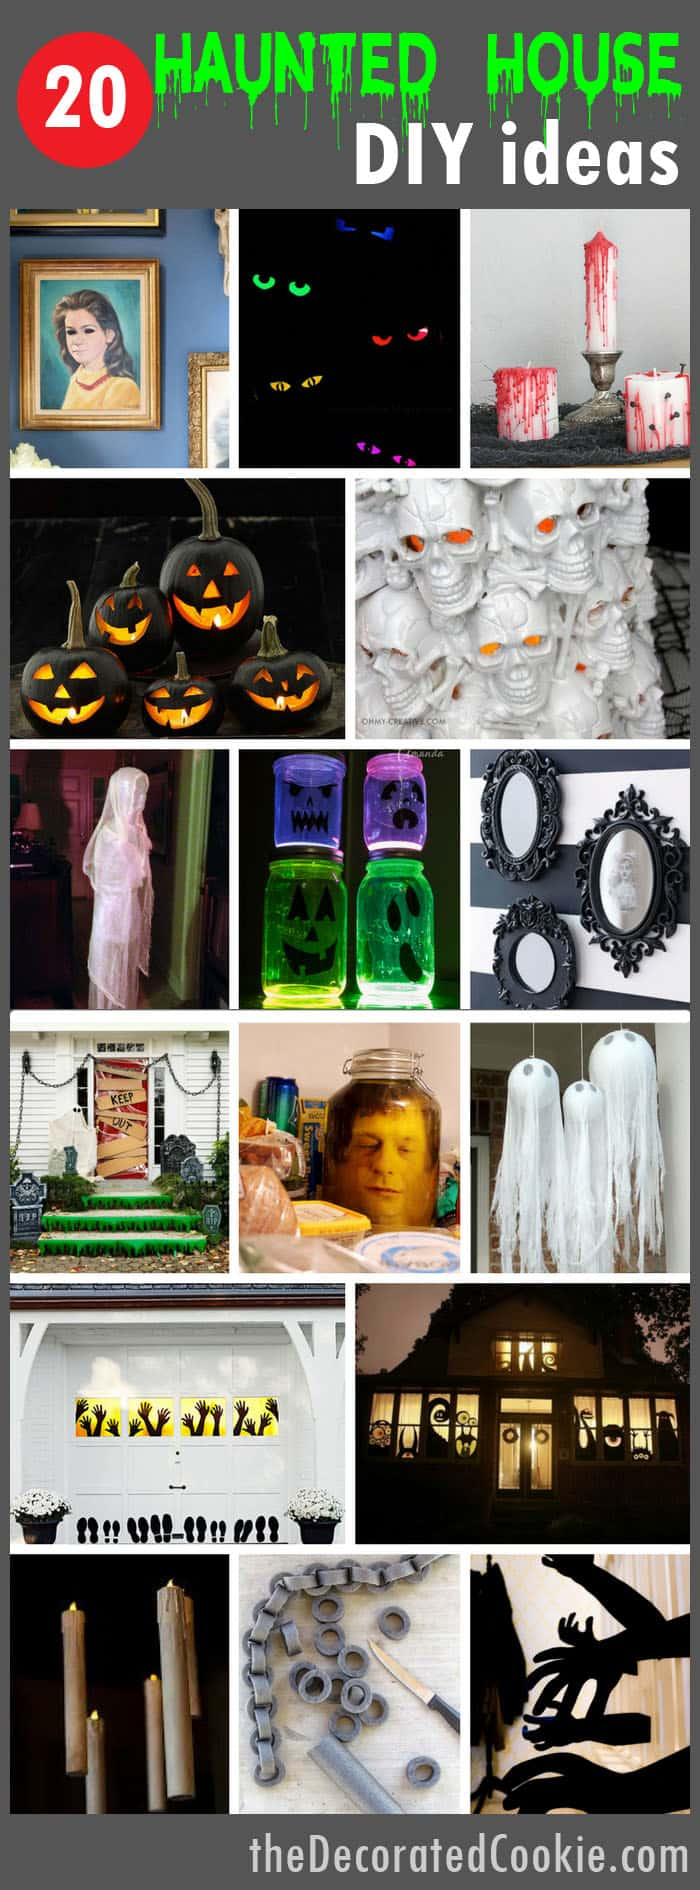 Diy Haunted House Ideas Roundup Host Your Own